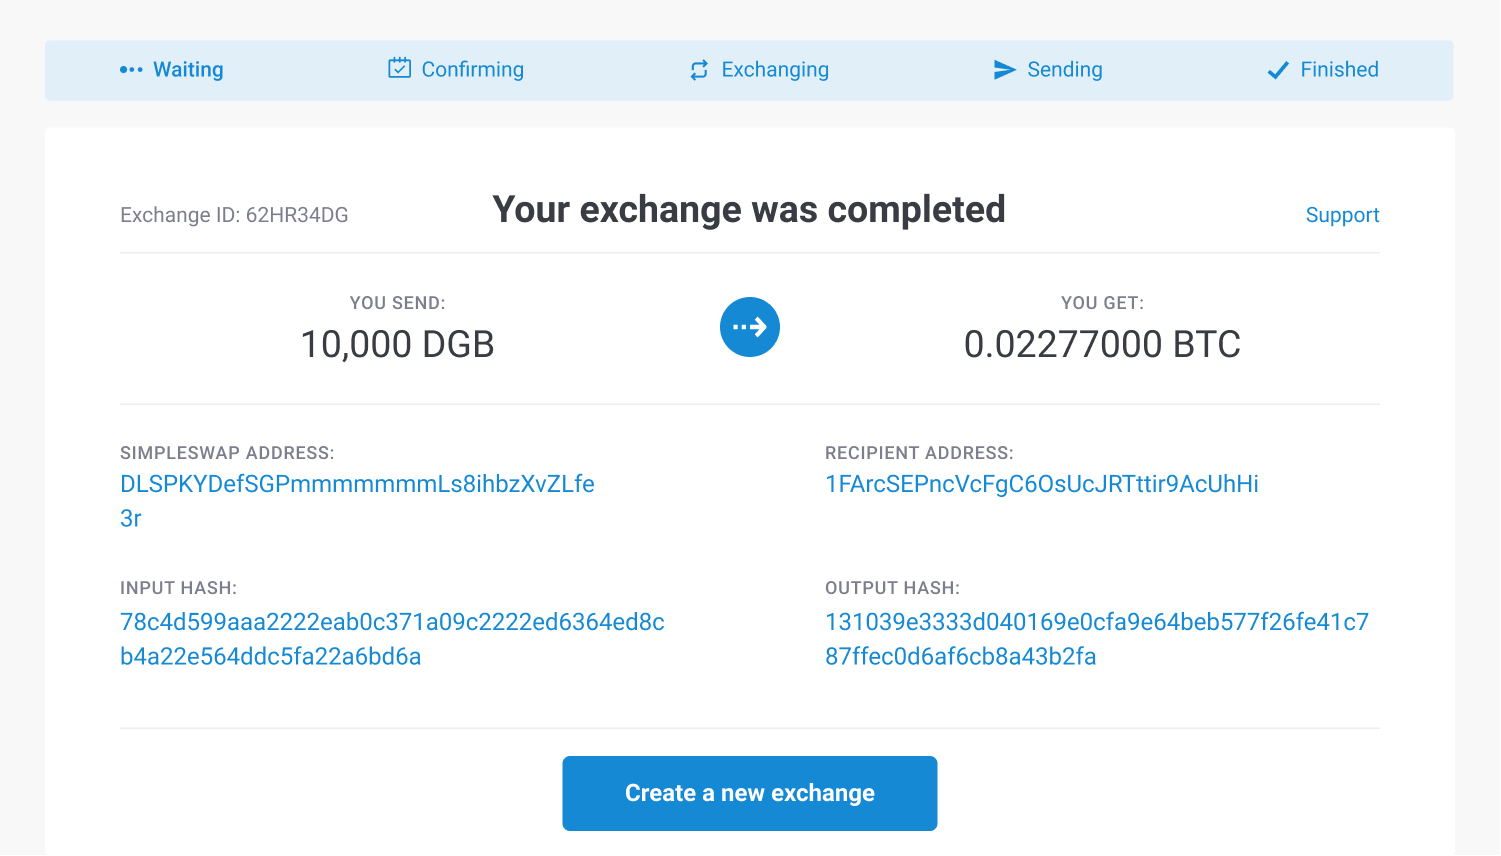 exchange completed successfully